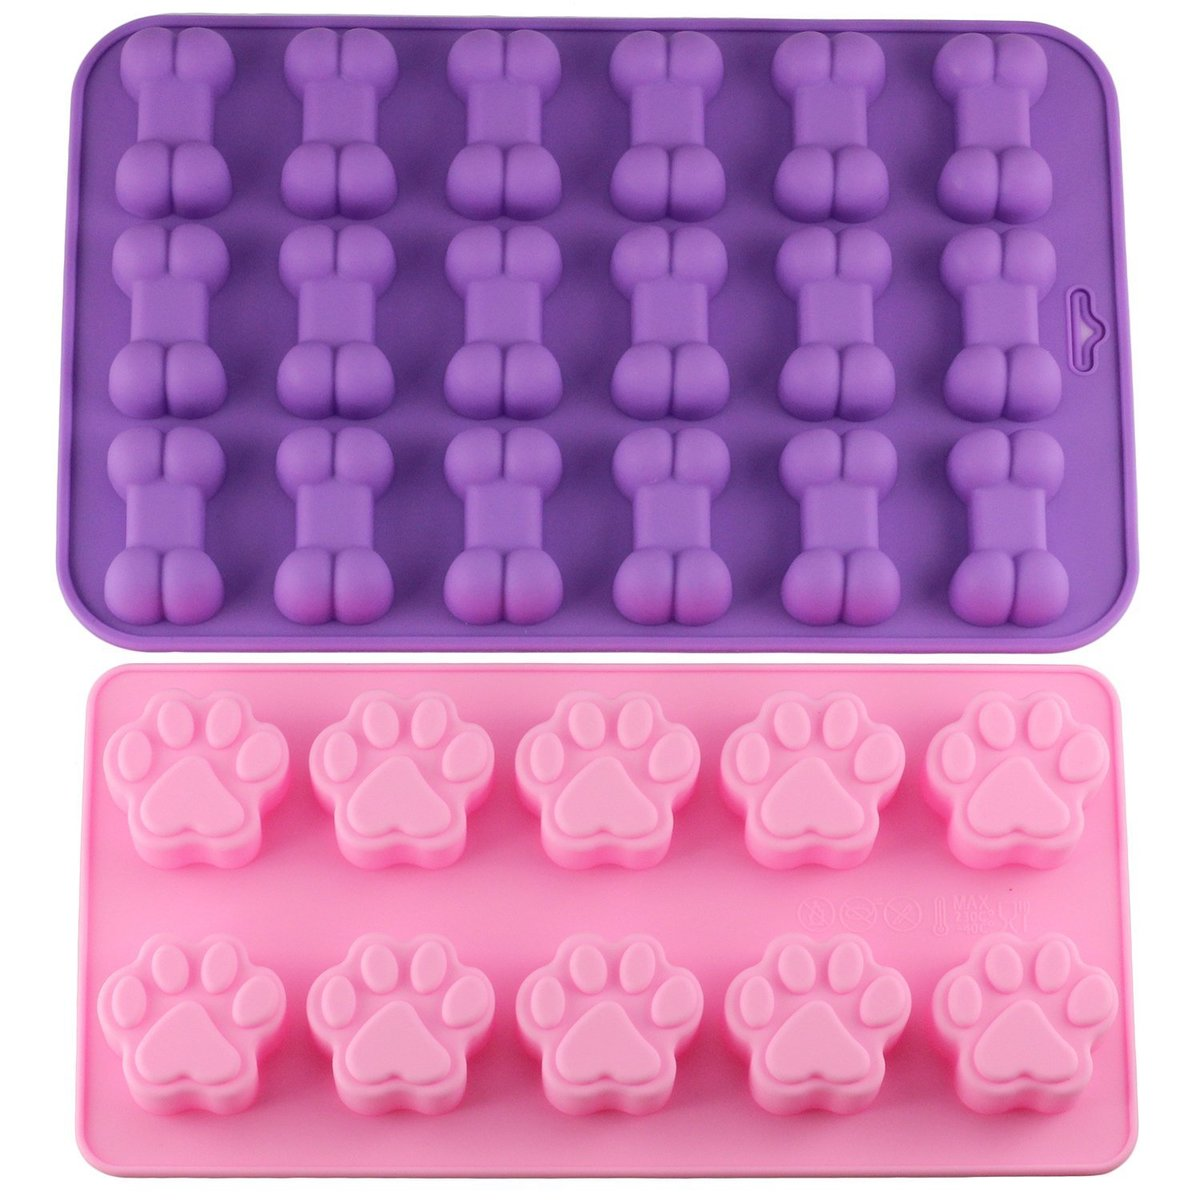 Mujiang Puppy Dog Paw and Bone Ice Trays Silicone Pet Treat Molds Soap Chocolate Jelly Candy Mold Cake Decorating Baking Moulds(China)